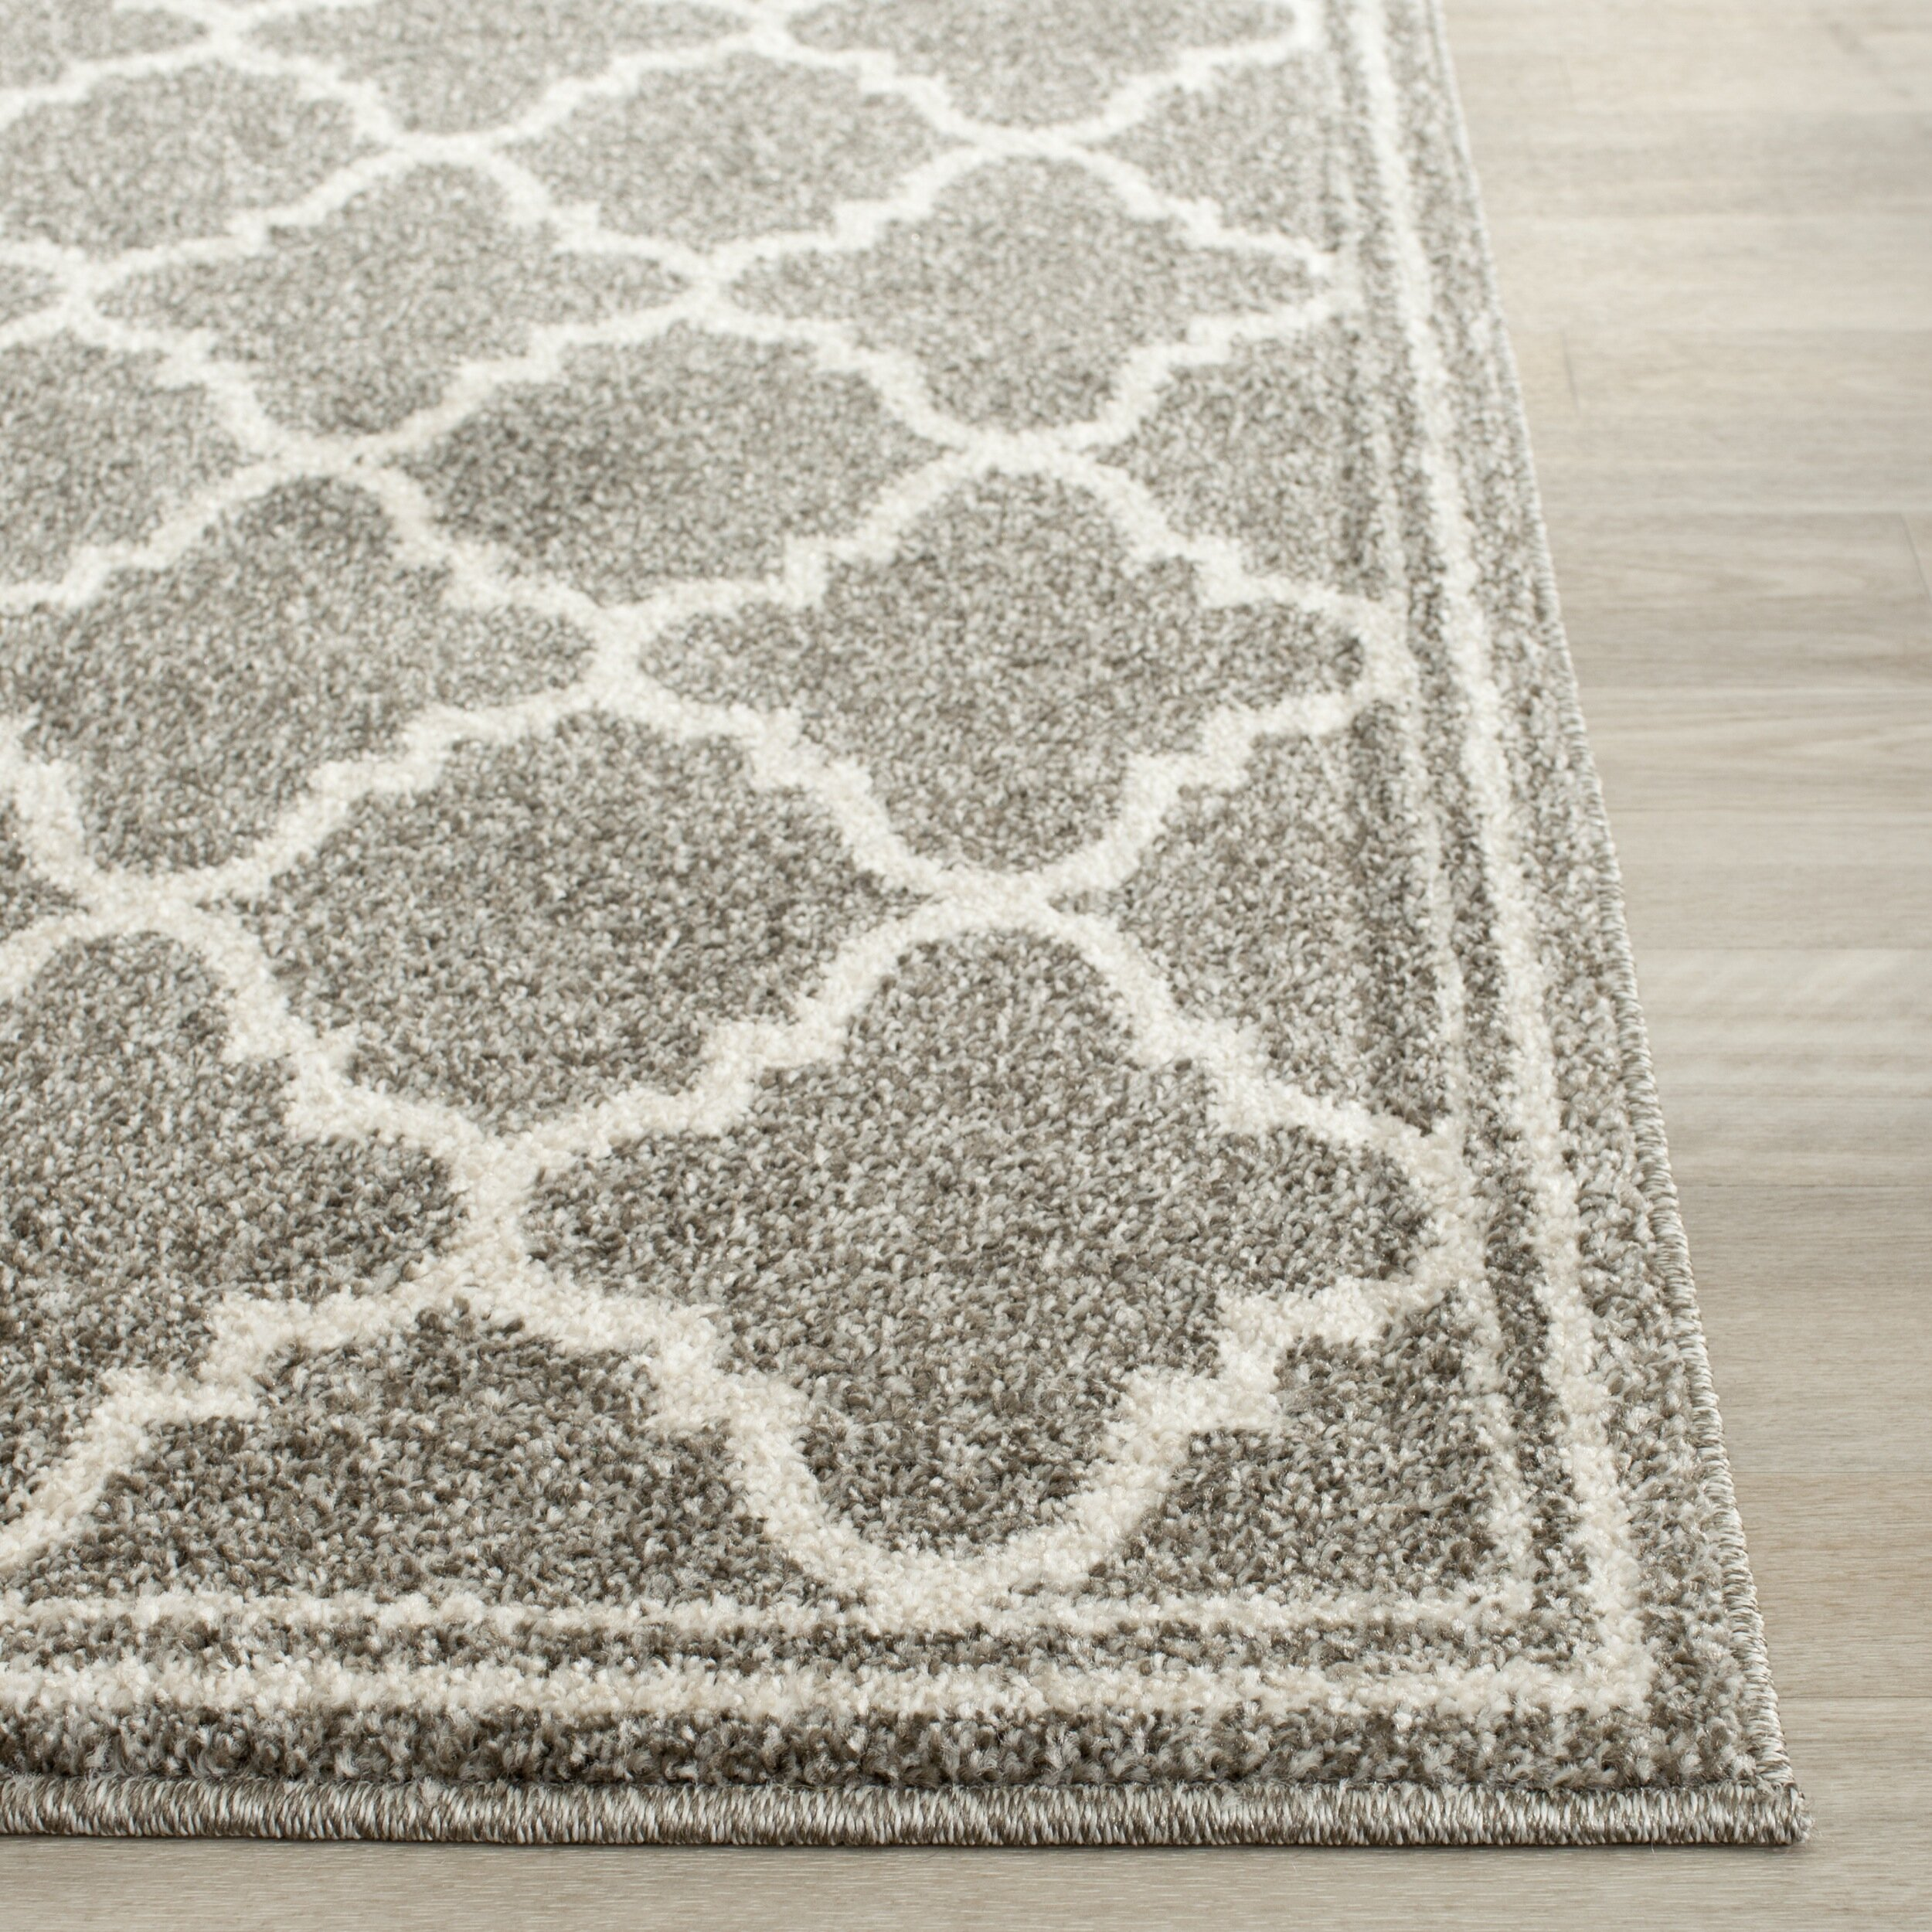 House of hampton levon dark grey beige area rug reviews for Grey and tan rug